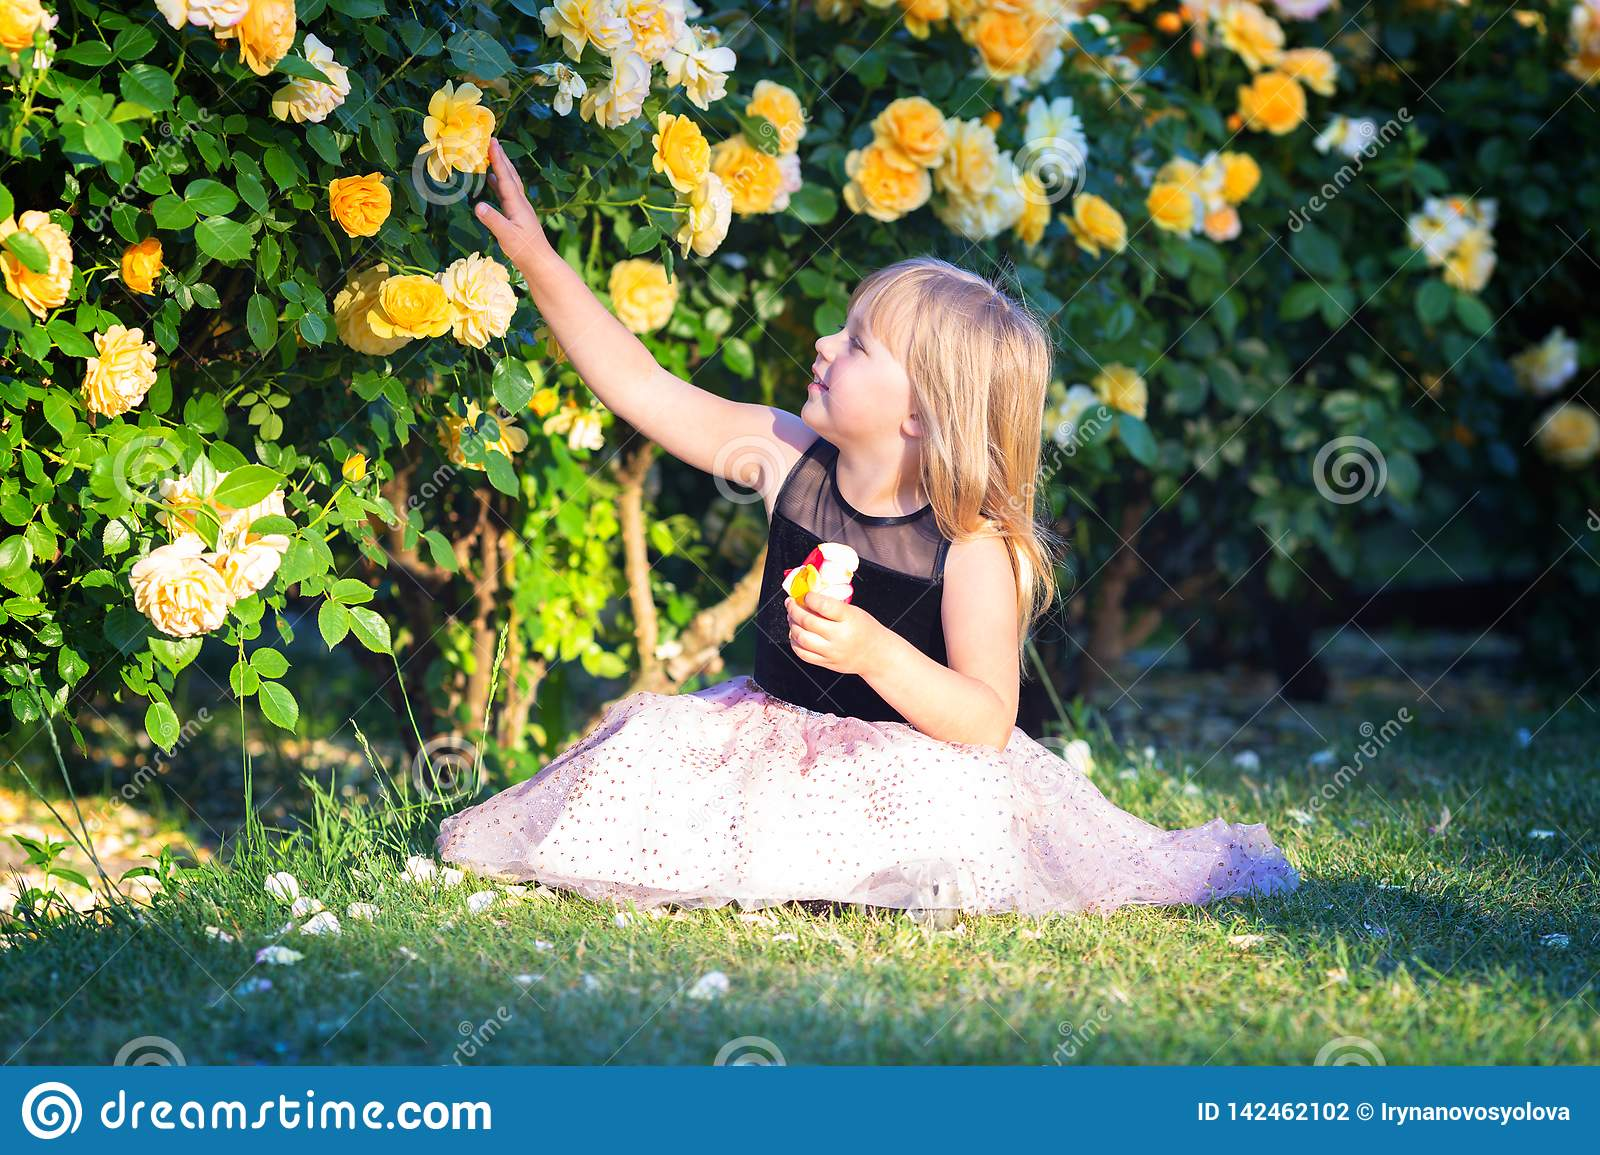 Little Caucasian girl sits on green grass in a rose garden next to yellow roses bush. Touches a rose and looks at it, smiling